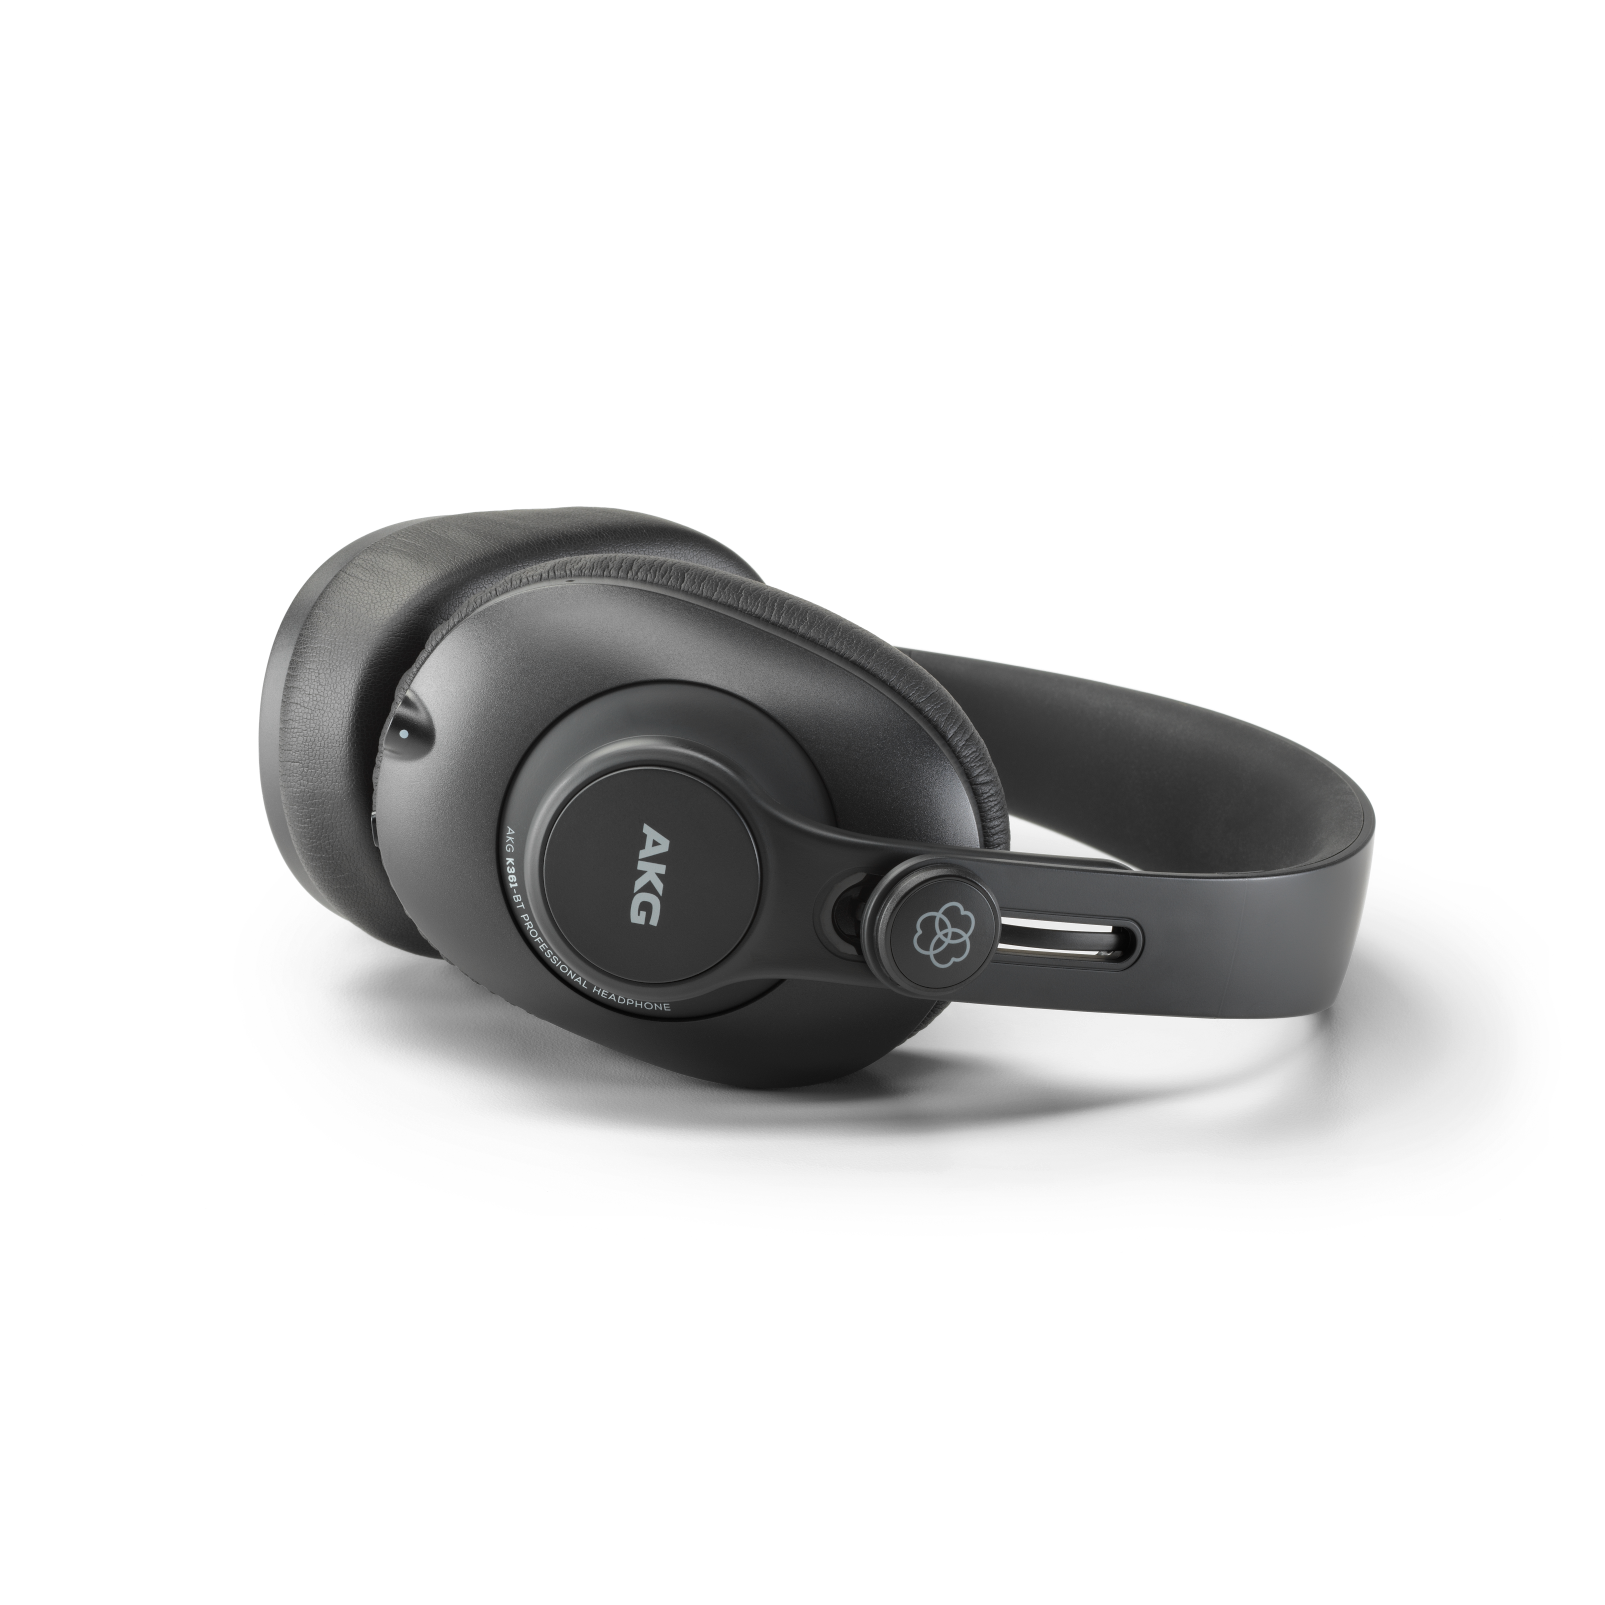 K361-BT - Black - Over-ear, closed-back, foldable studio headphones with Bluetooth - Detailshot 3